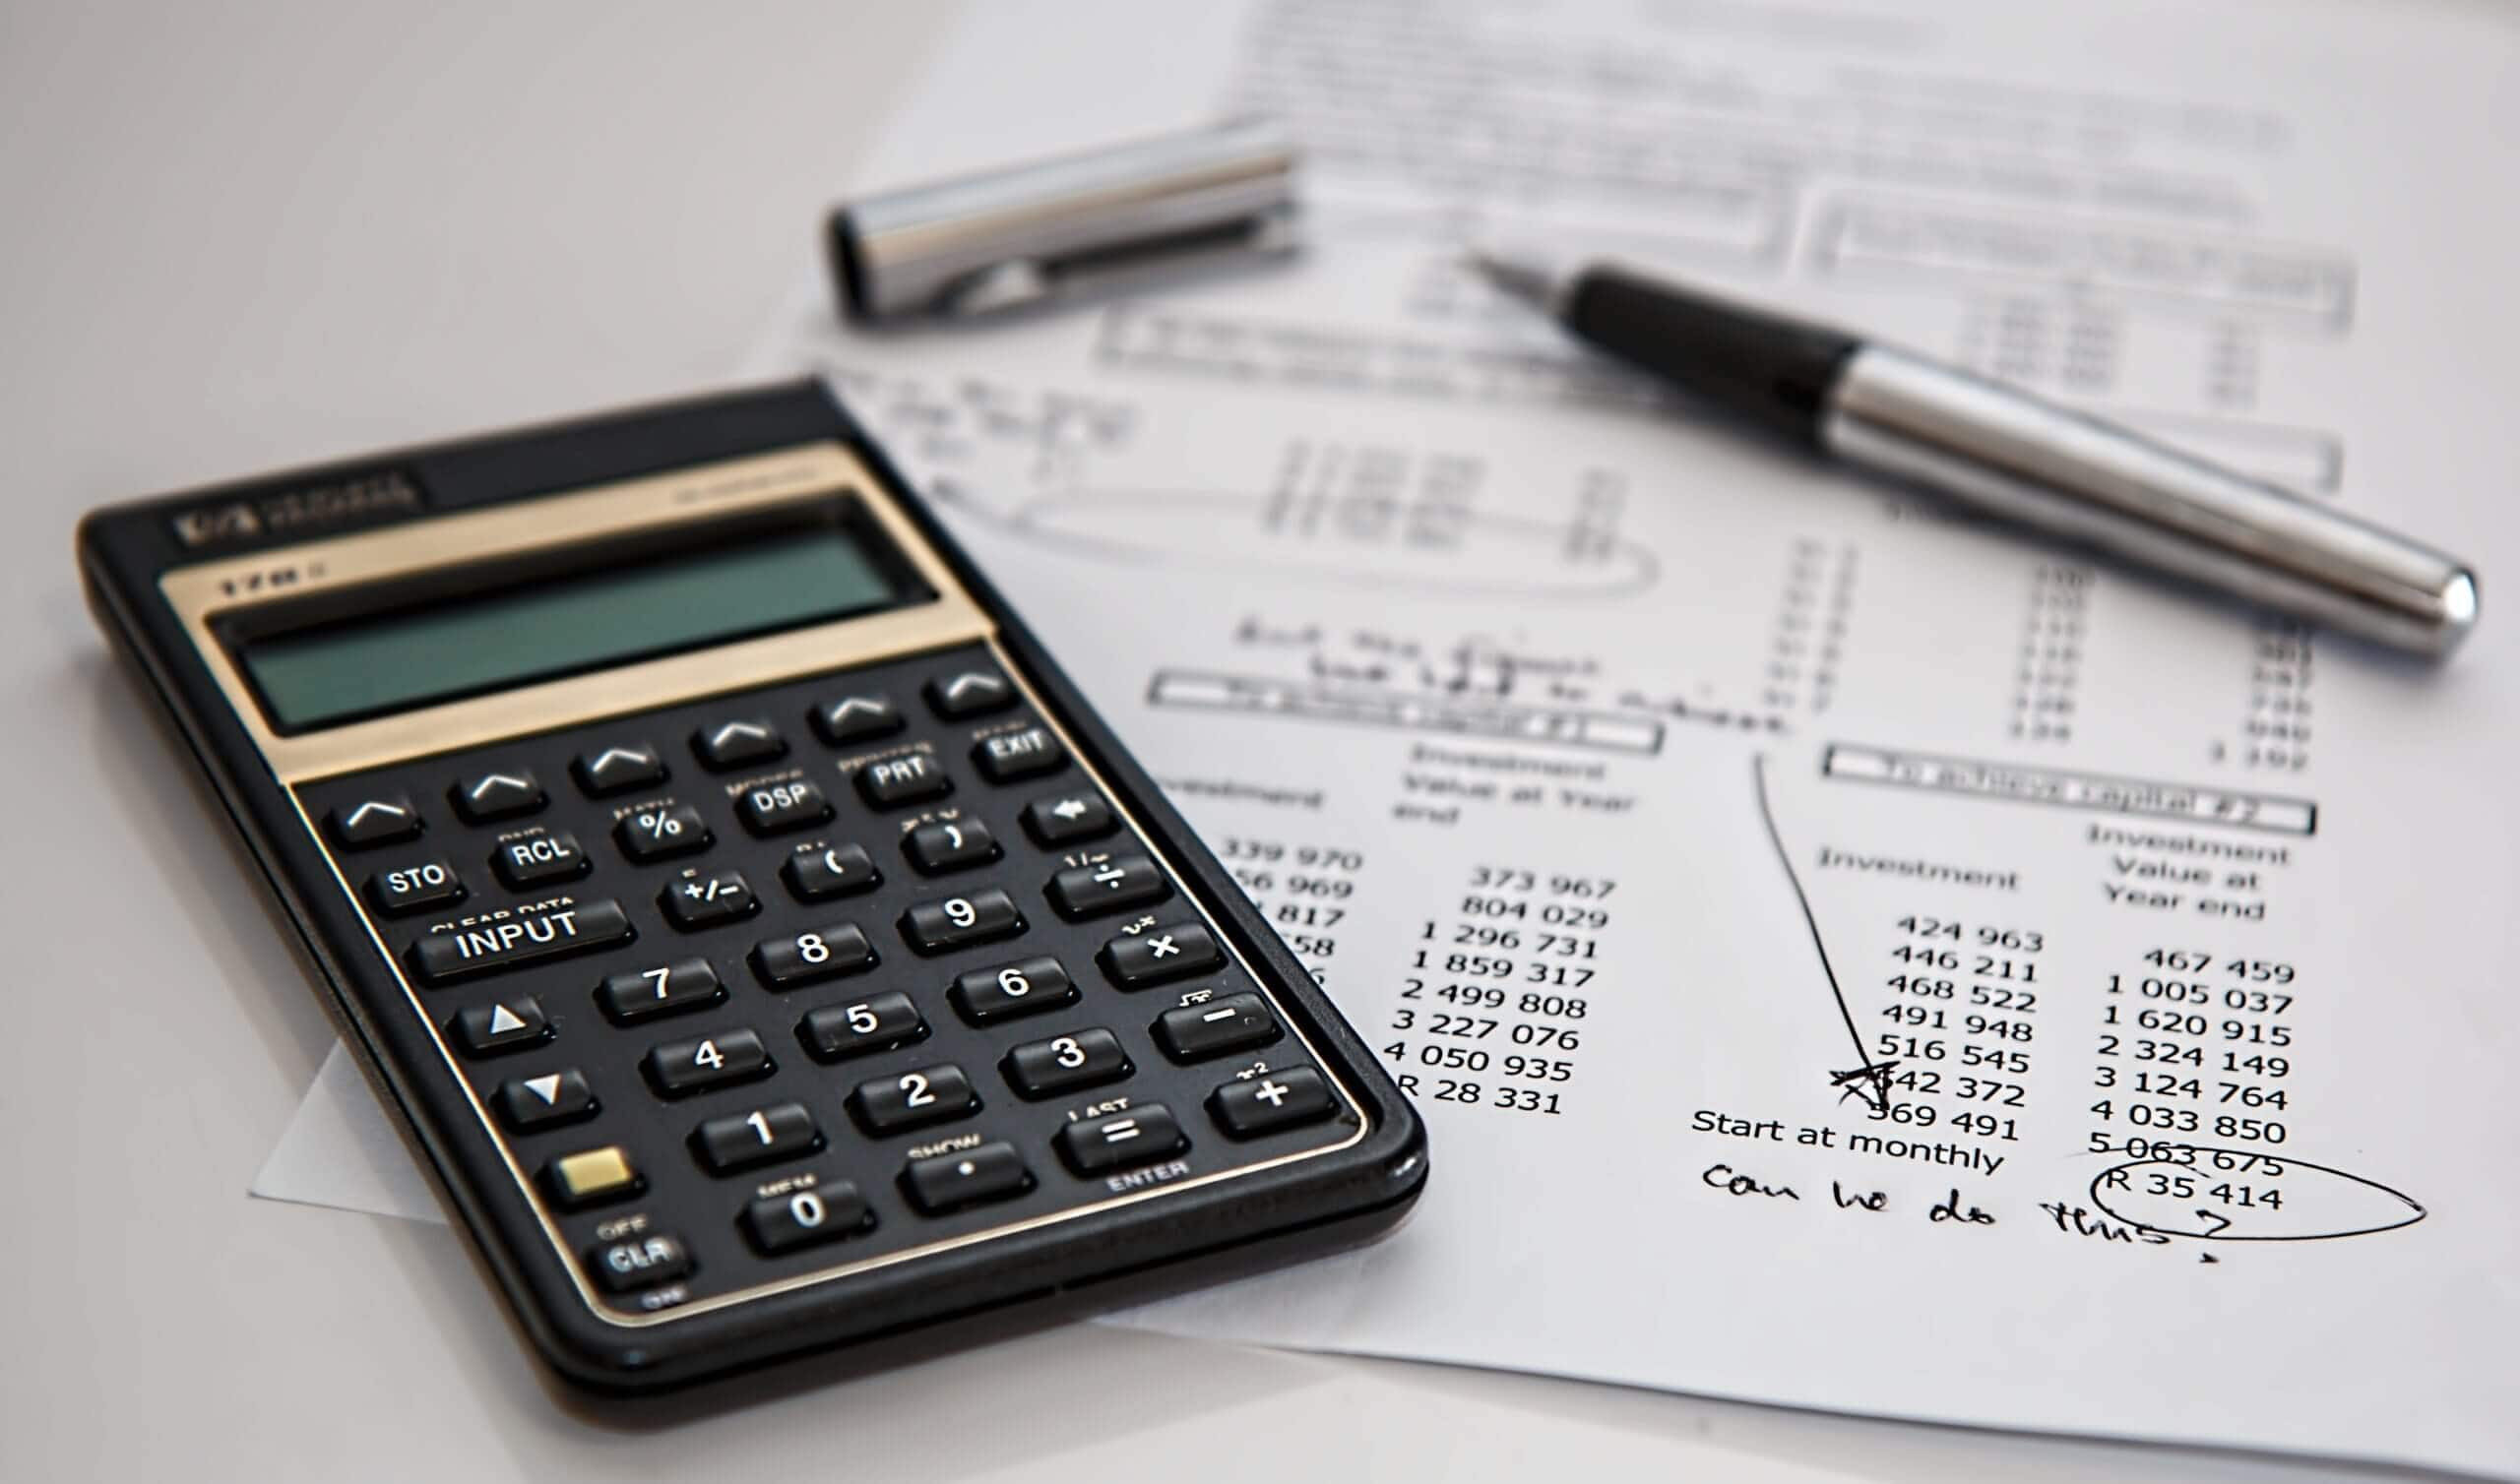 Desk with calculator with budget planning paper- Pexels stock image